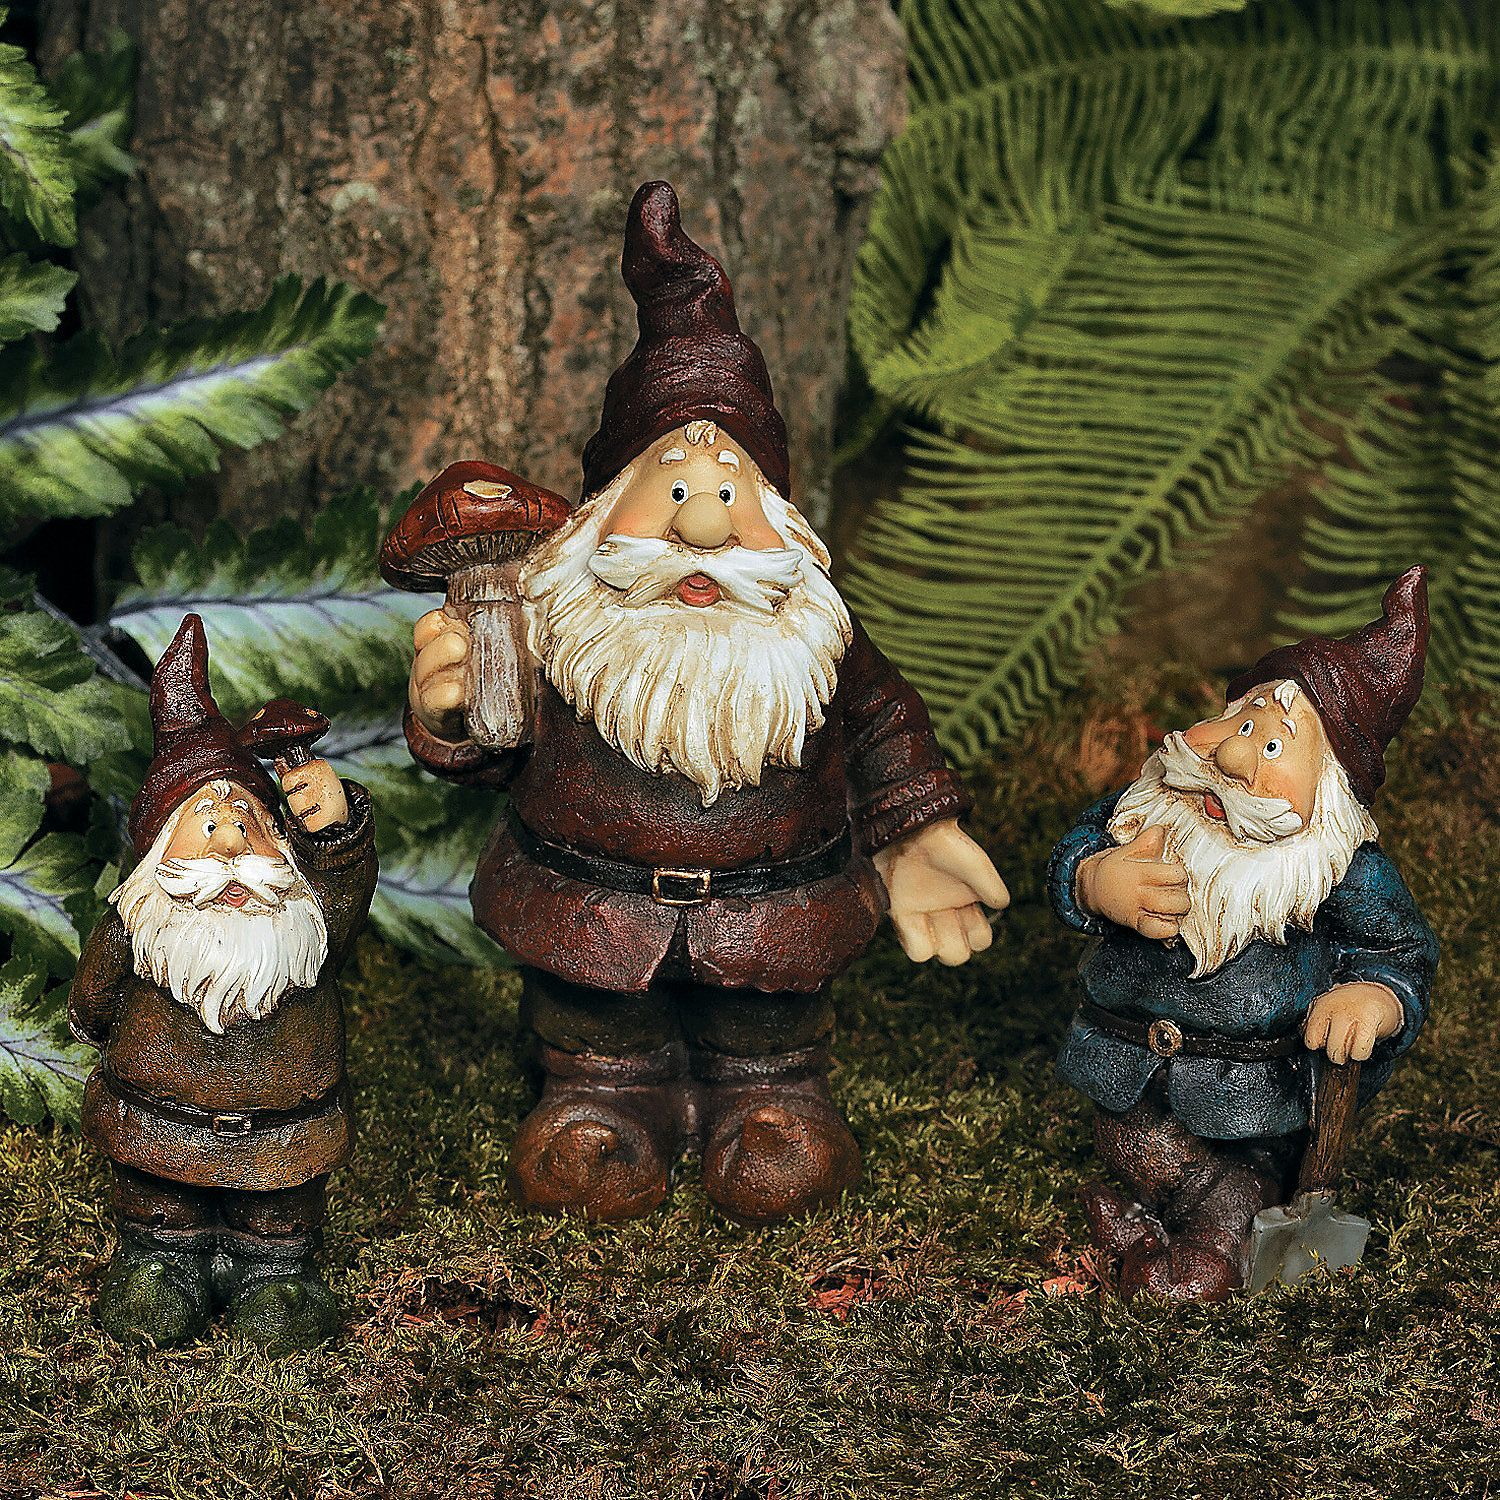 Garden Gnomes. According to legend, gnomes are known for guarding ...